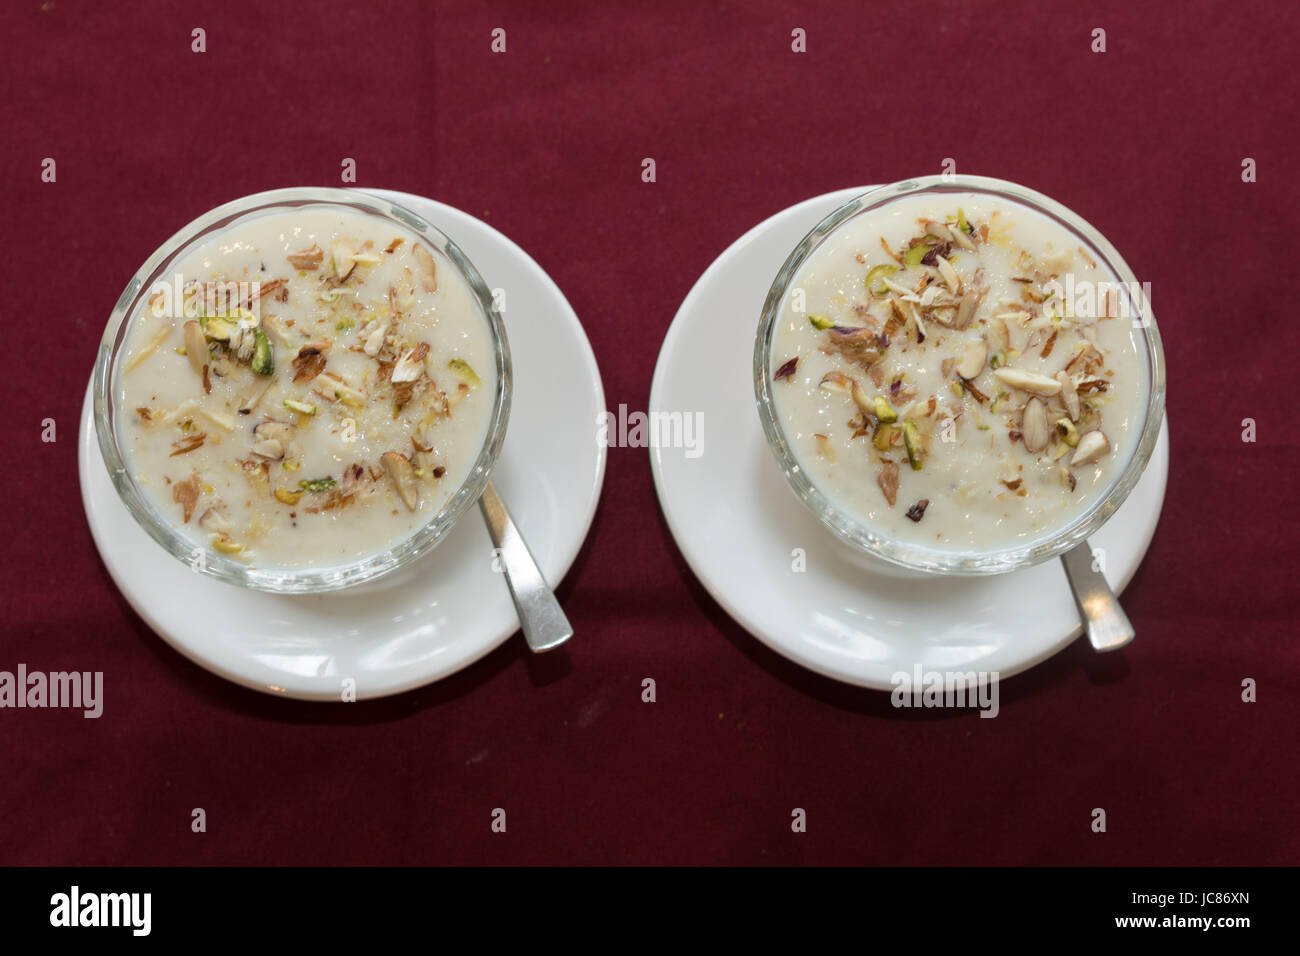 Rabri or rabdi is a sweet, condensed-milk-based dish made by boiling the milk on low heat for a long time until - Stock Image